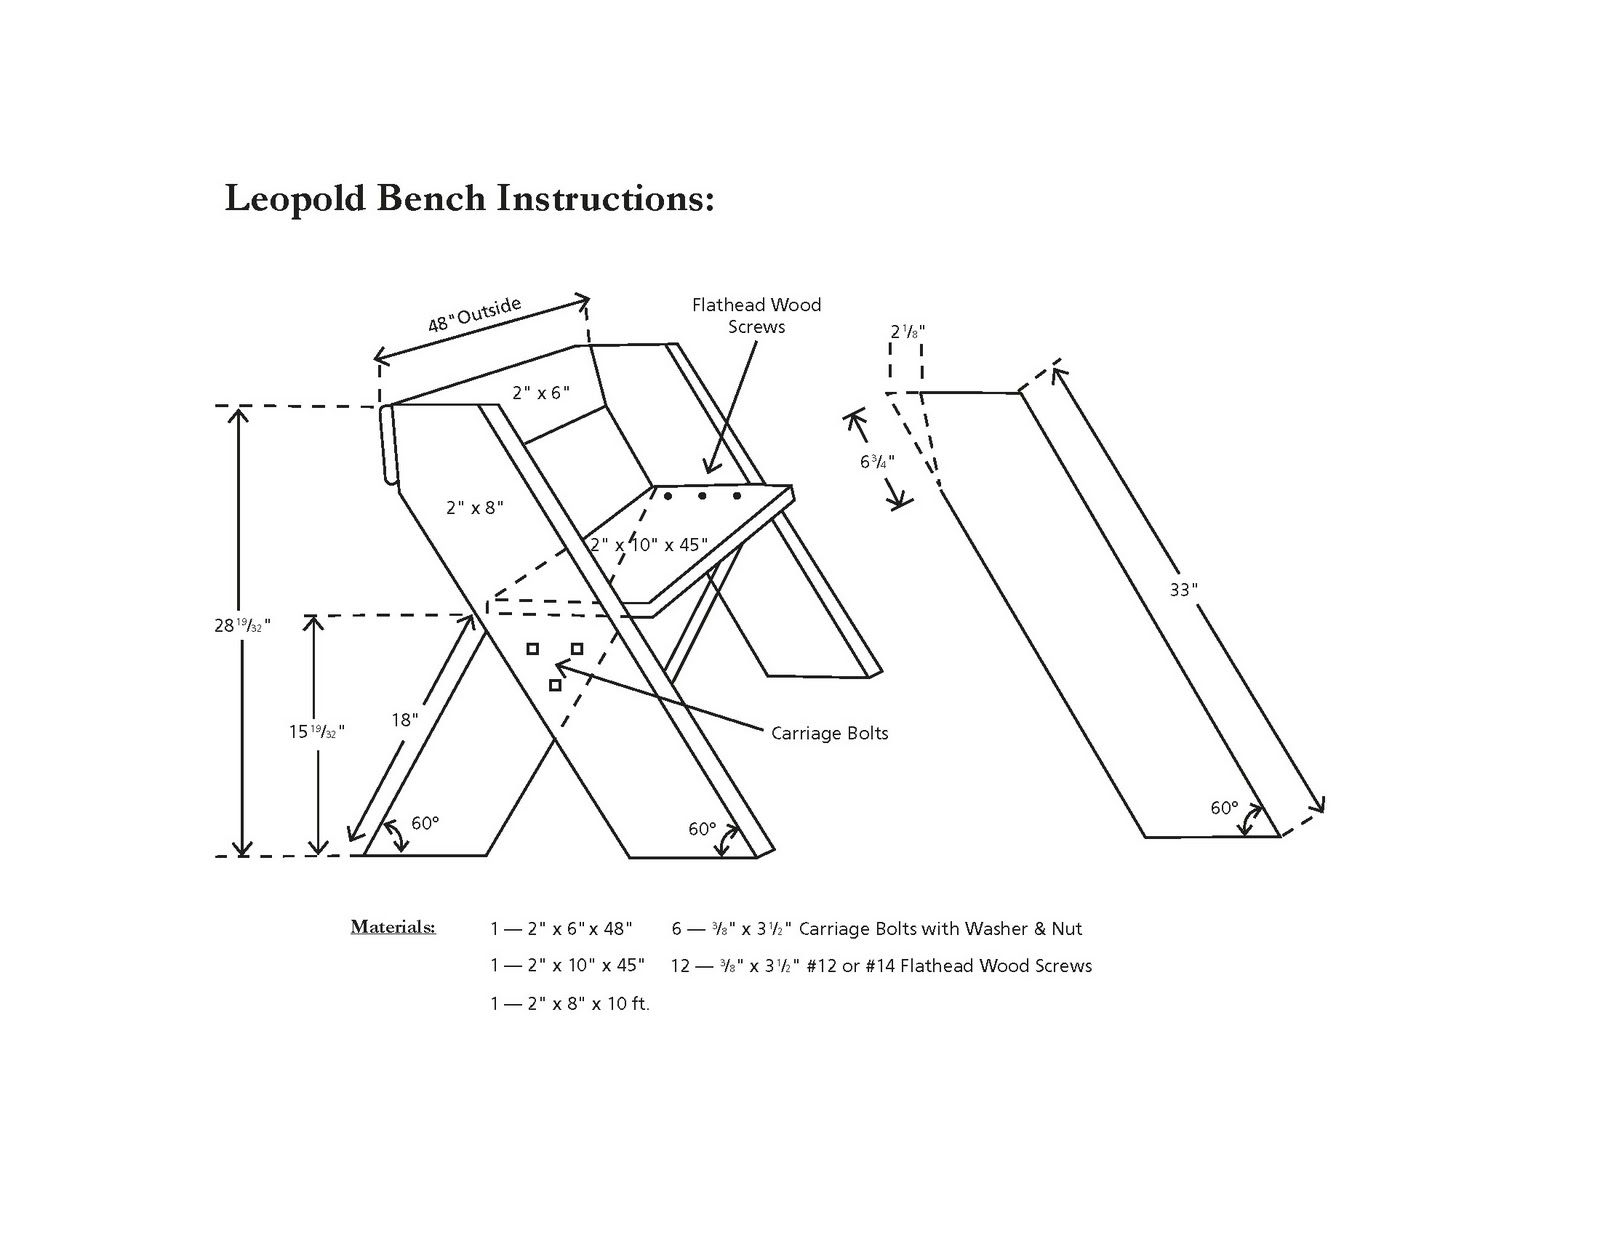 Aldo Leopold Bench Instructions